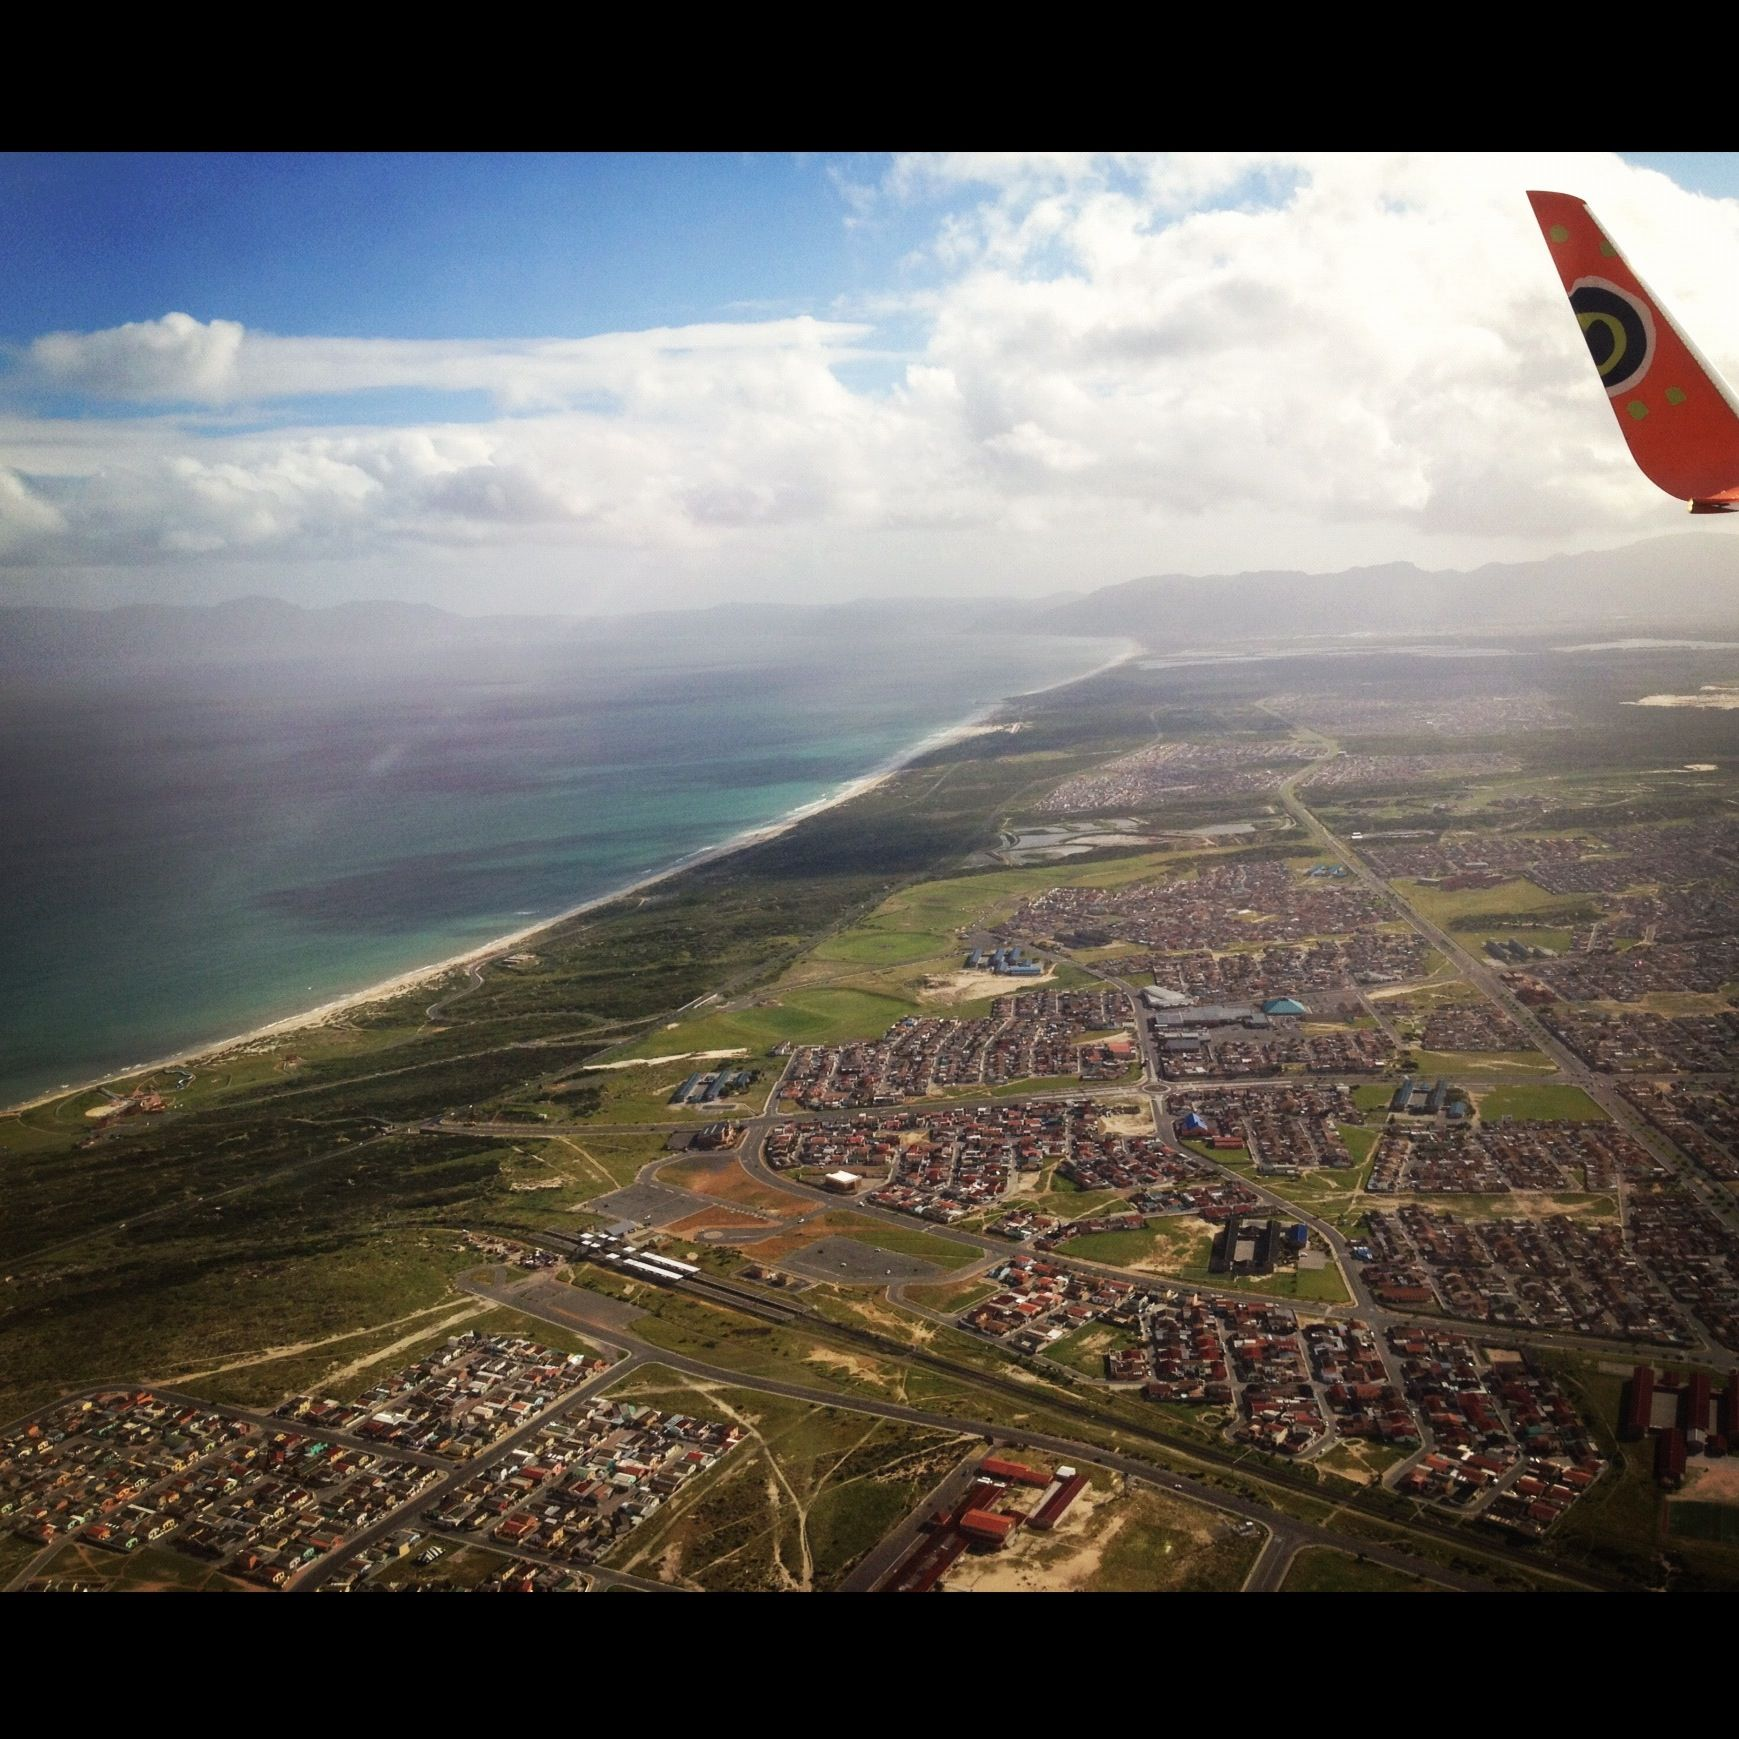 Sunshine and coastlines while flying into Cape Town